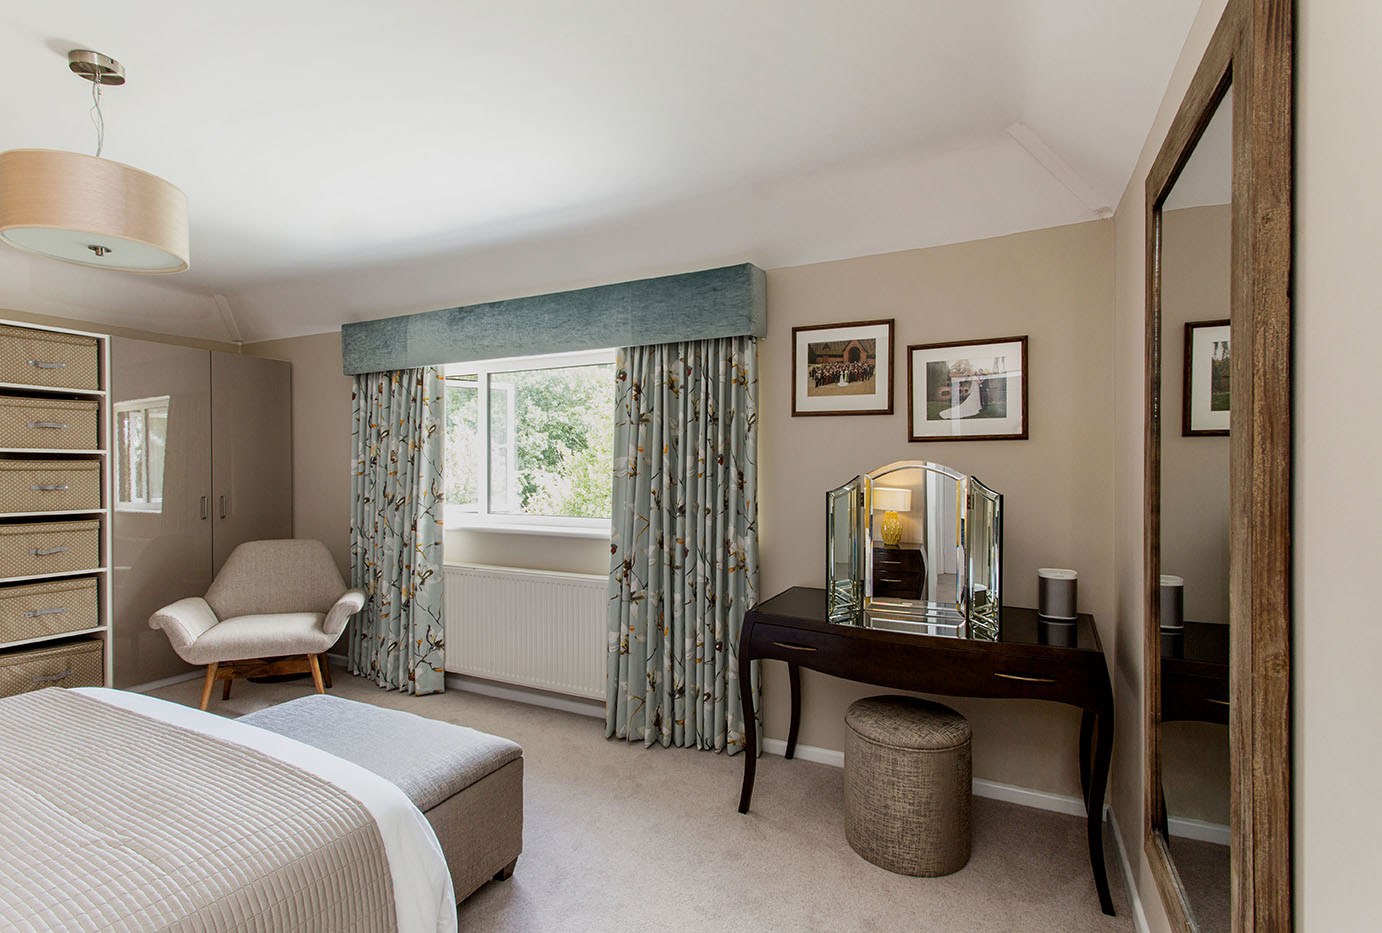 Bespoke fitted bedroom designs Berkshire, interior designer Oxfordshire, interior design, master bathroom refurbishment, home decor, interior stylist, interior designer London, bespoke bedrooms Oxfordshire, bespoke fitted bedrooms Buckingham, design psychology, design flow, interior designer uk